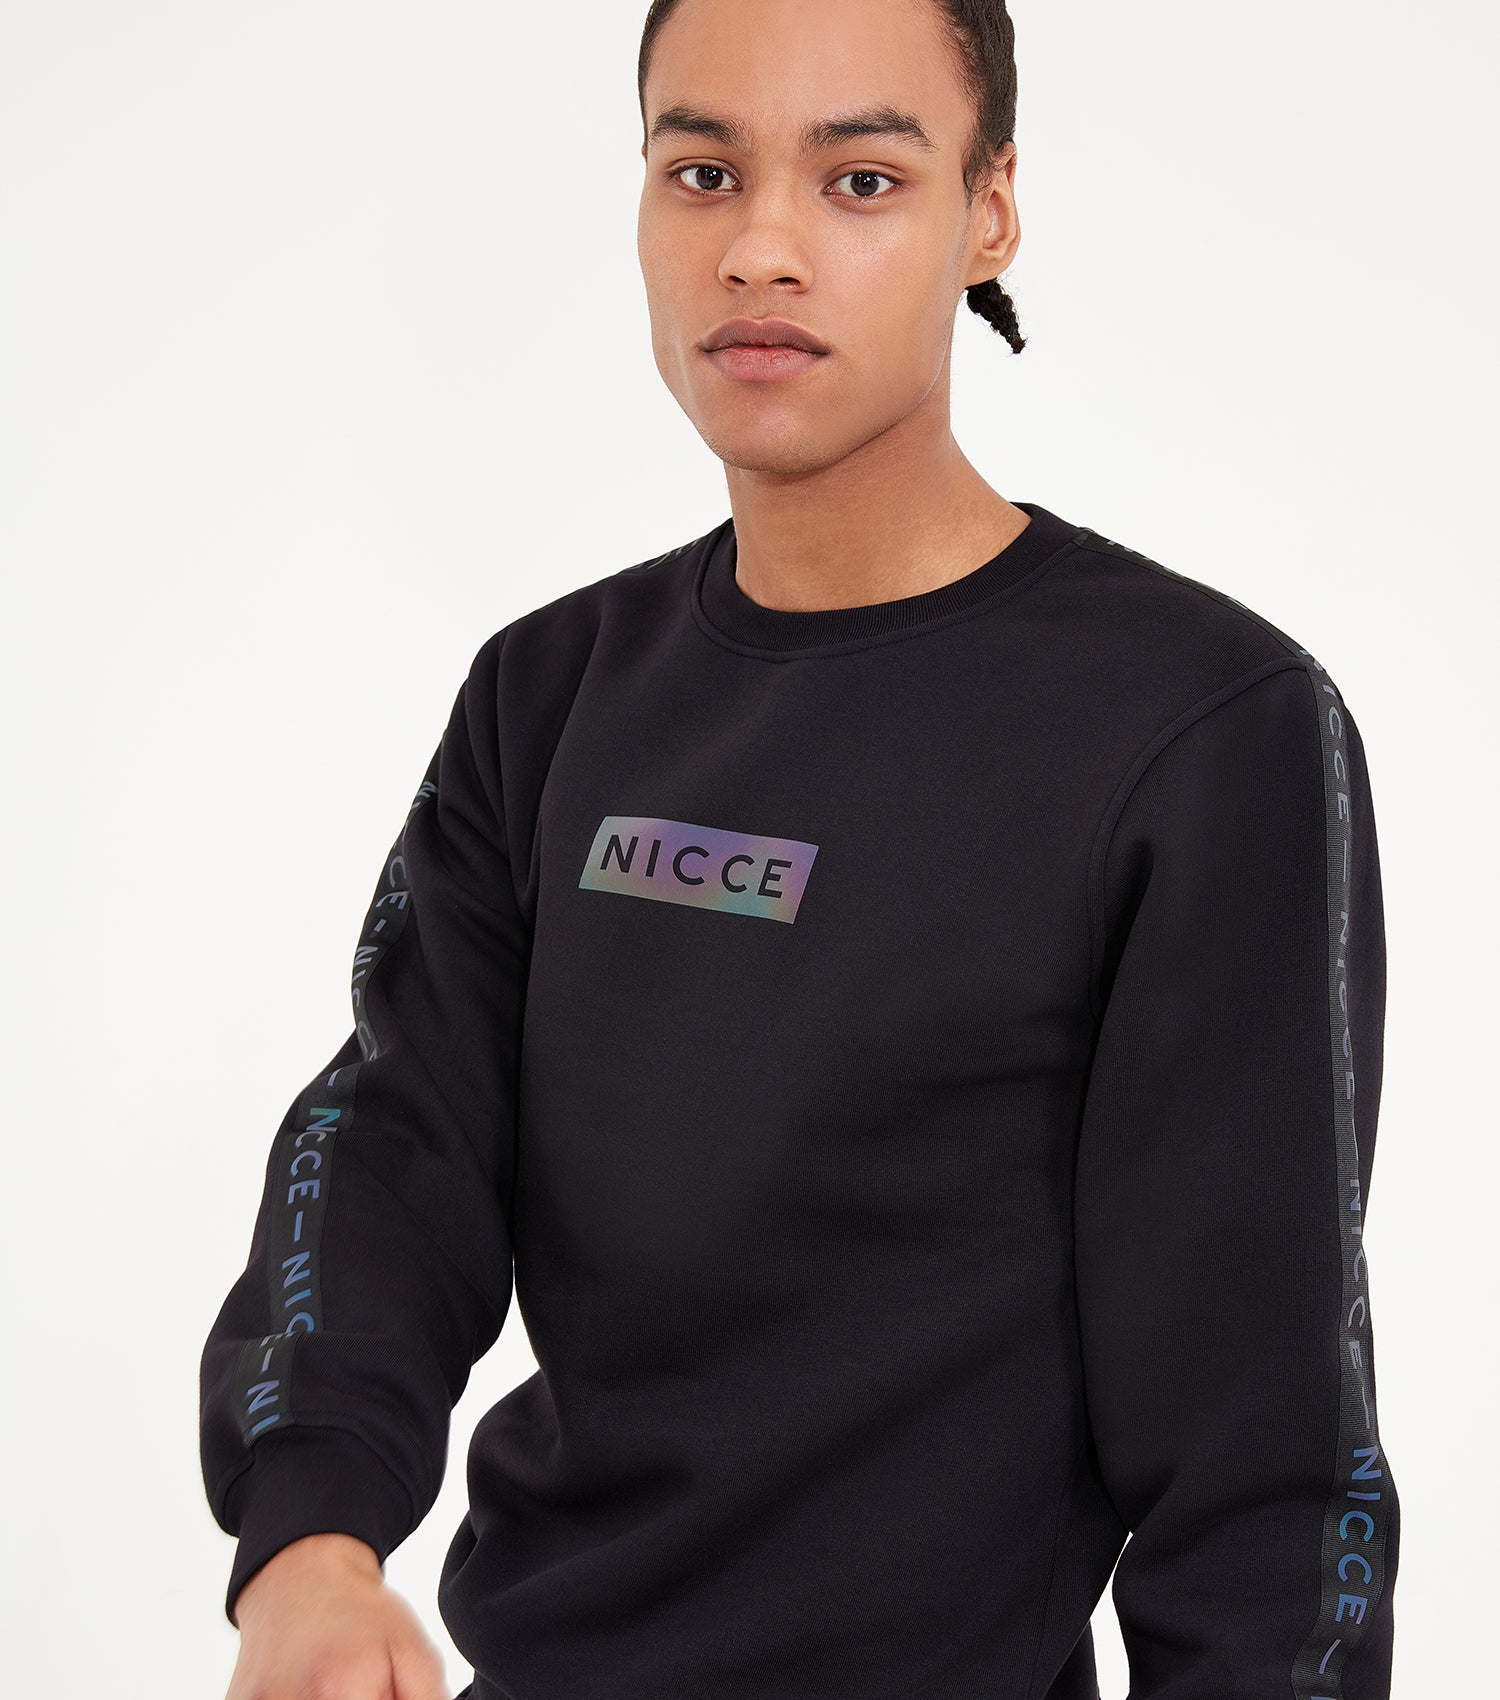 NICCE Mens Trivo Sweat Track Top | Black, Sweatshirts